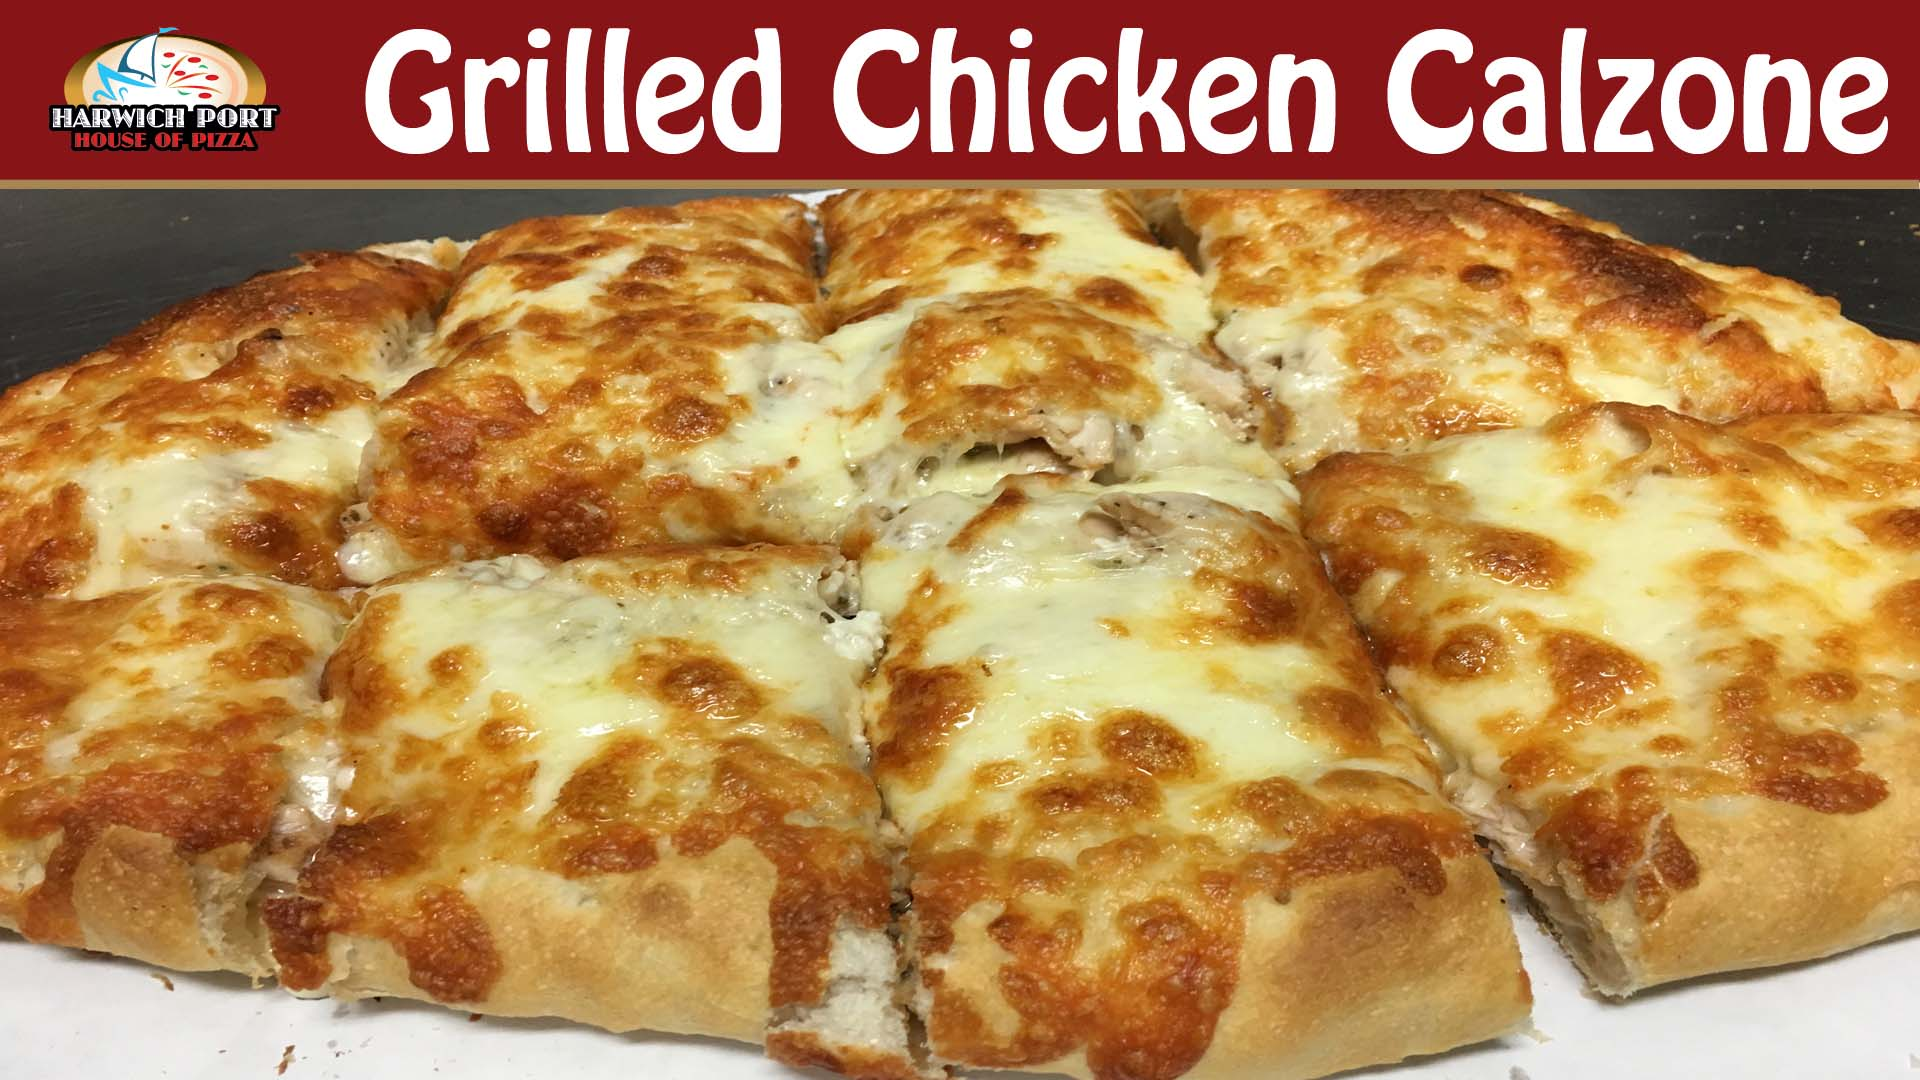 Grilled Chicken Calzone